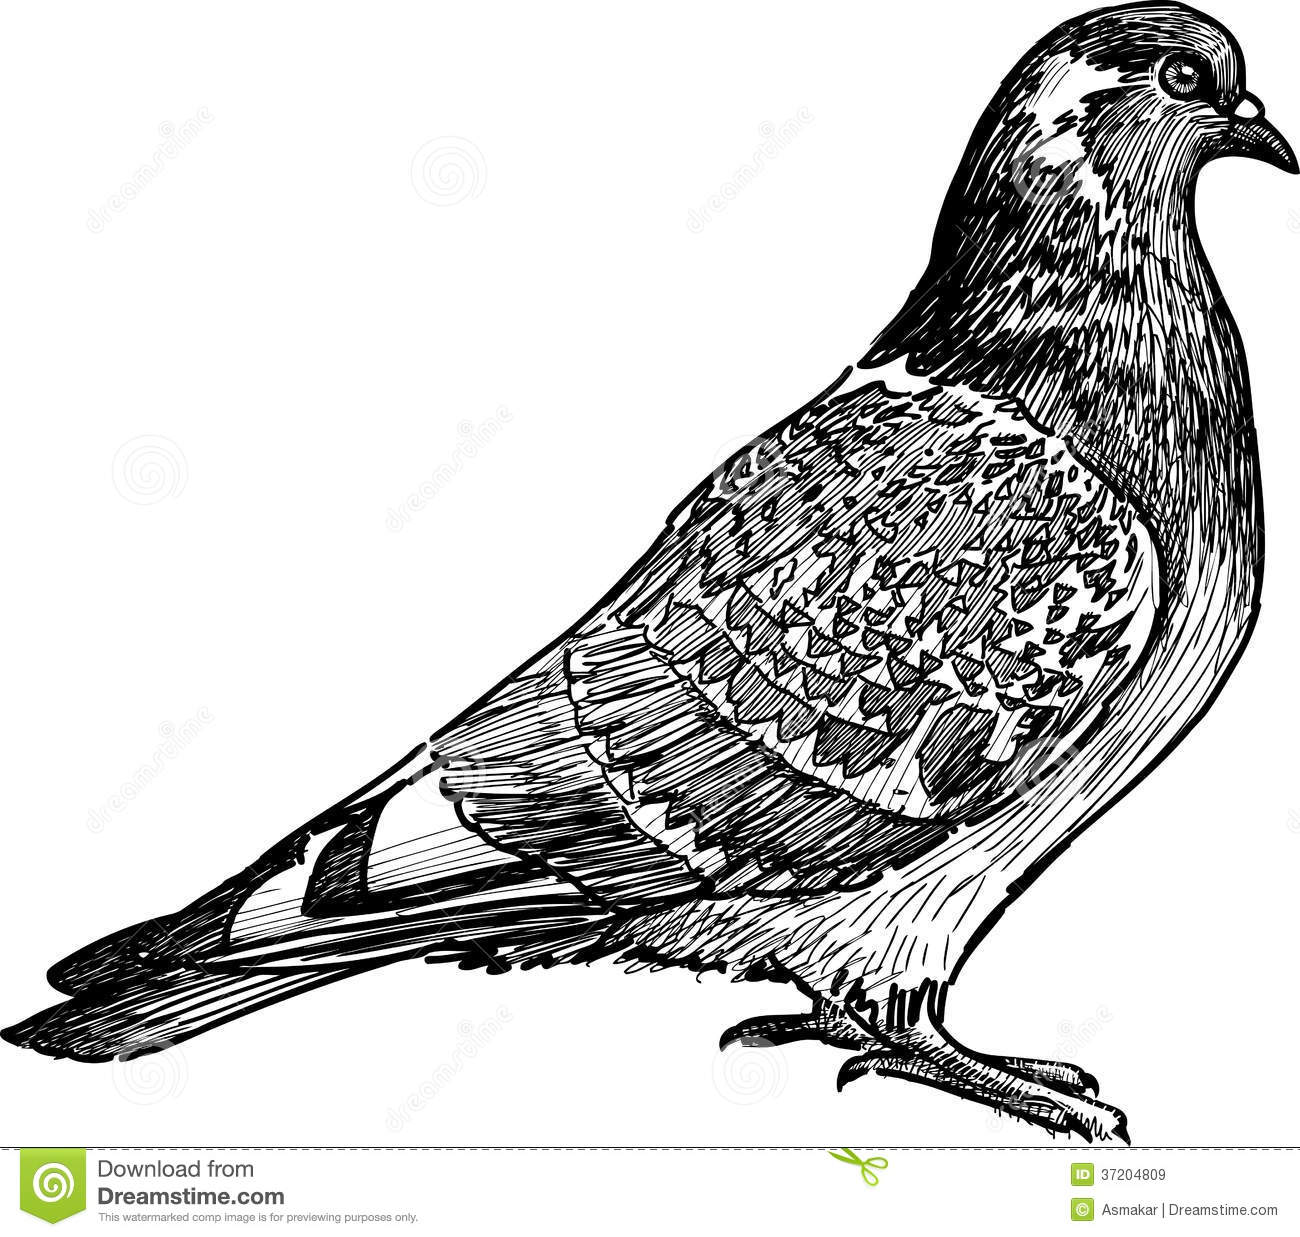 Pigeon illustration - photo#38